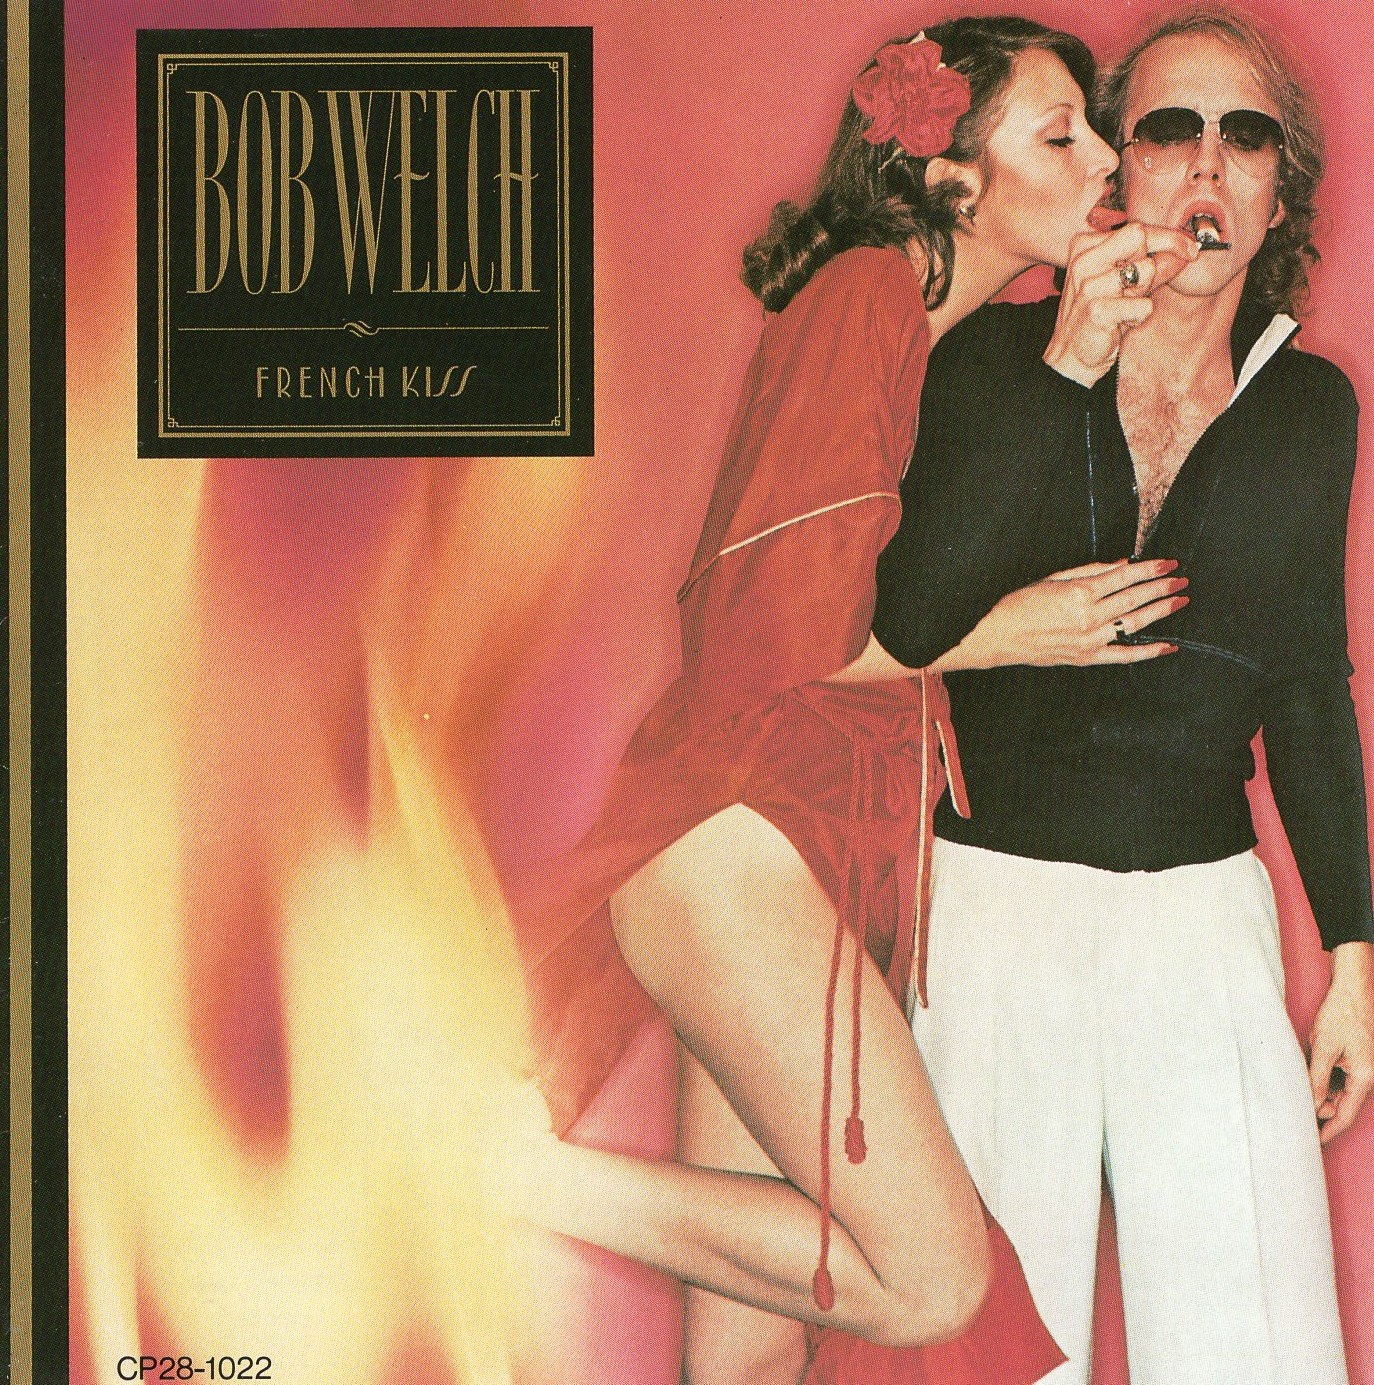 """French Kiss"" Bob Welch"